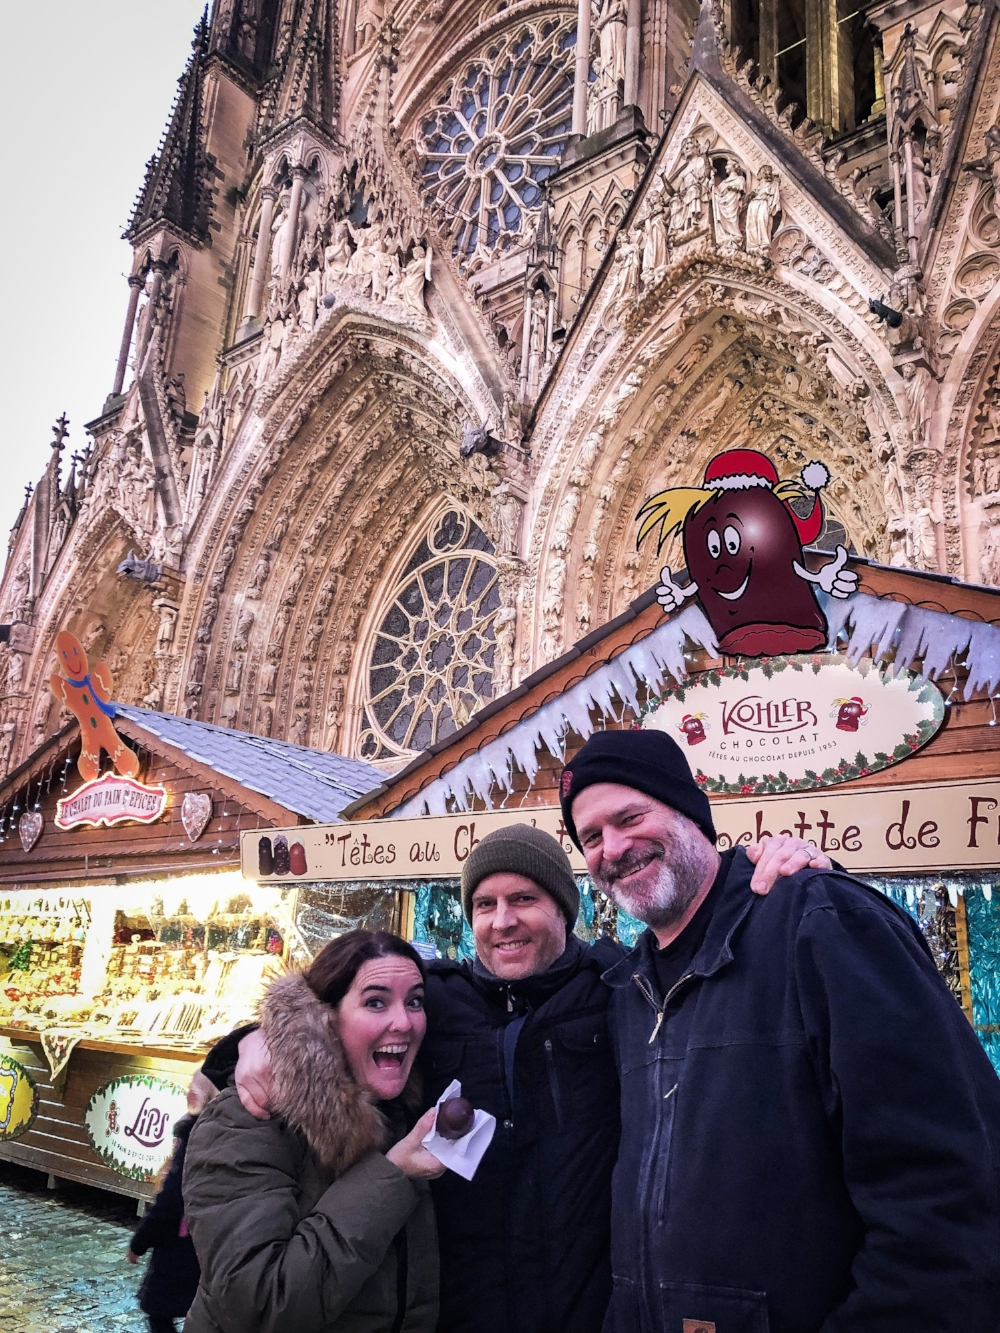 Claire, Justin, and Jeff enjoying chocolate at the Marche d'hiver in Reims, France, in the shadow of the Reims Cathedral